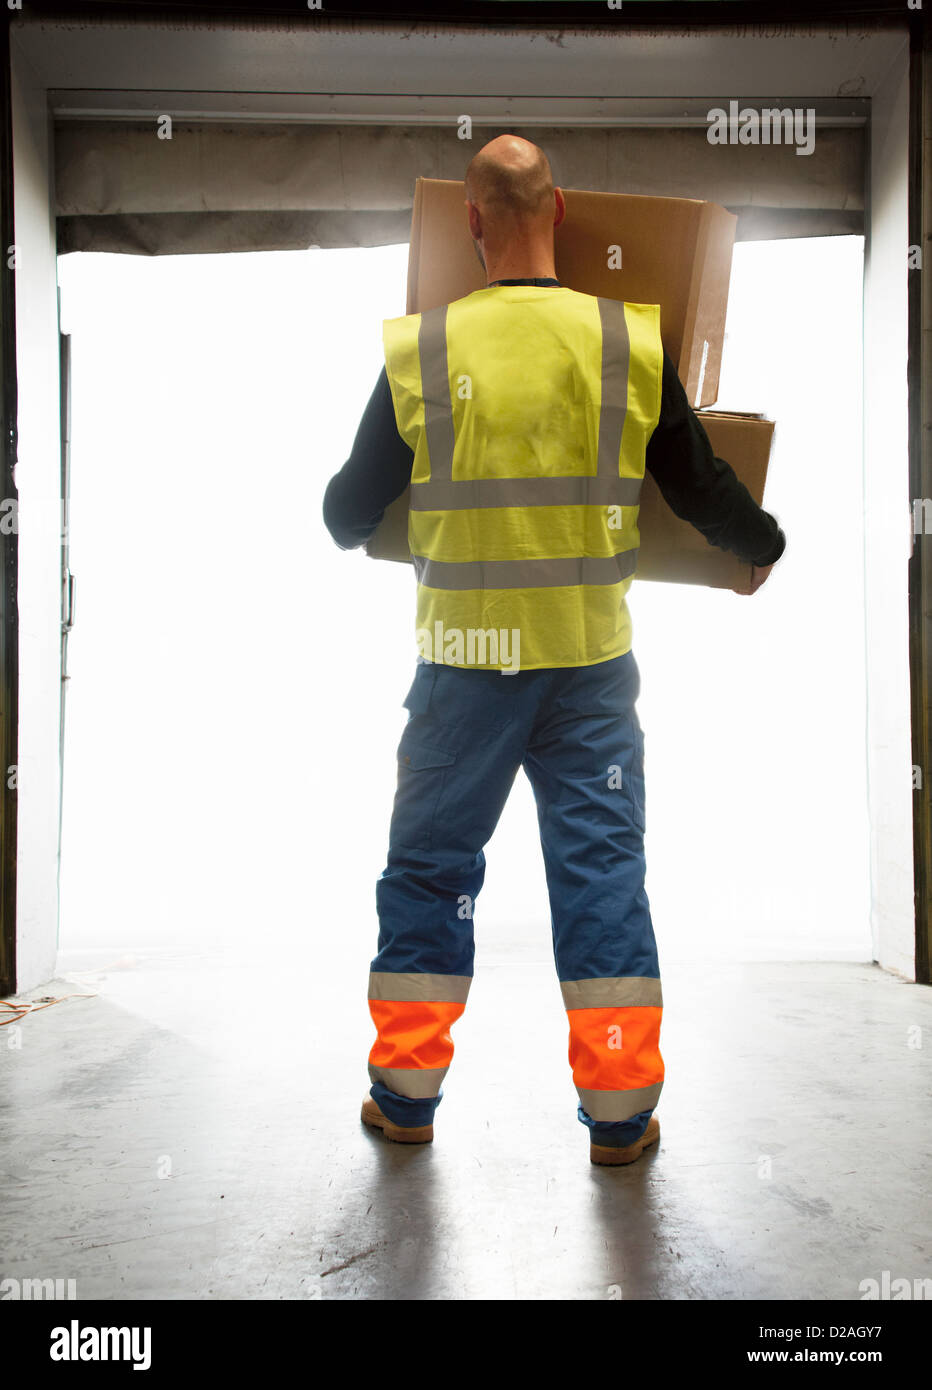 Worker carrying boxes in warehouse - Stock Image